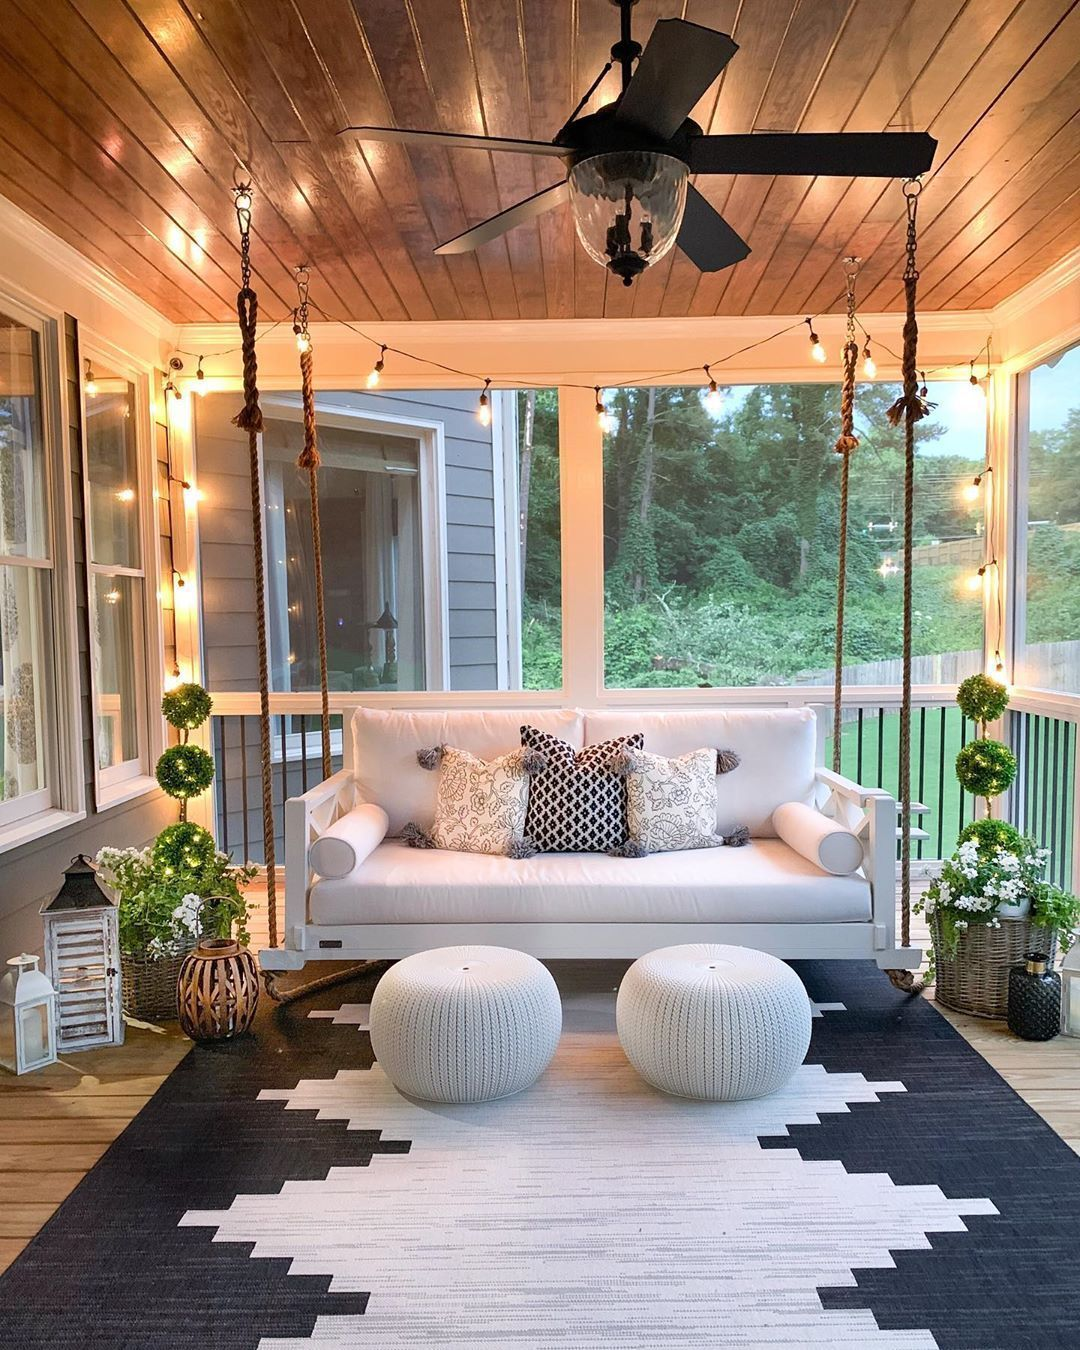 , Rethink Your Outdoor Space by Channeling This Dreamy Porch Swing | Hunker #outdoordecor #Channeling #Dreamy #home decor ideas #Outdoor, Family Blog 2020, Family Blog 2020